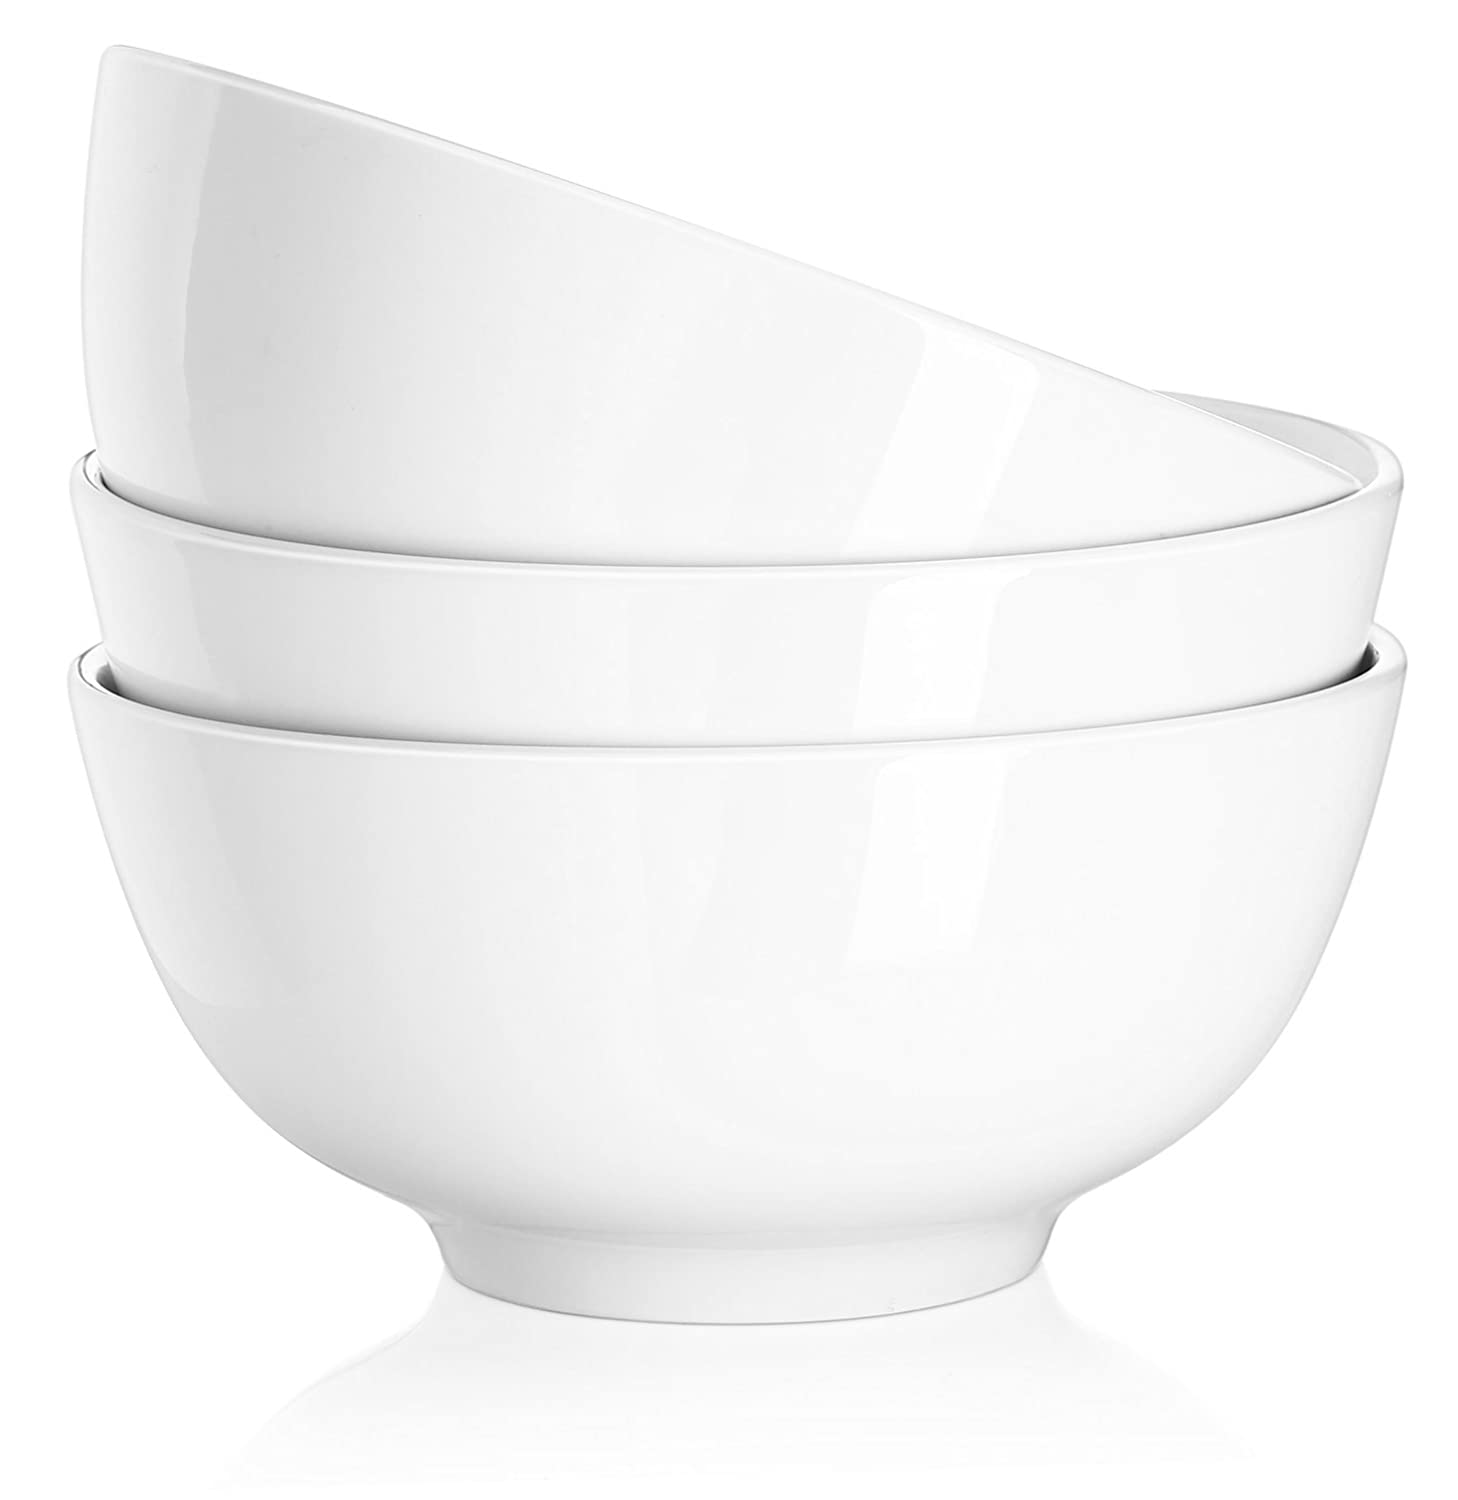 DOWAN 29 Ounce Porcelain Soup Bowls - 3 Packs, Stackable Round, White